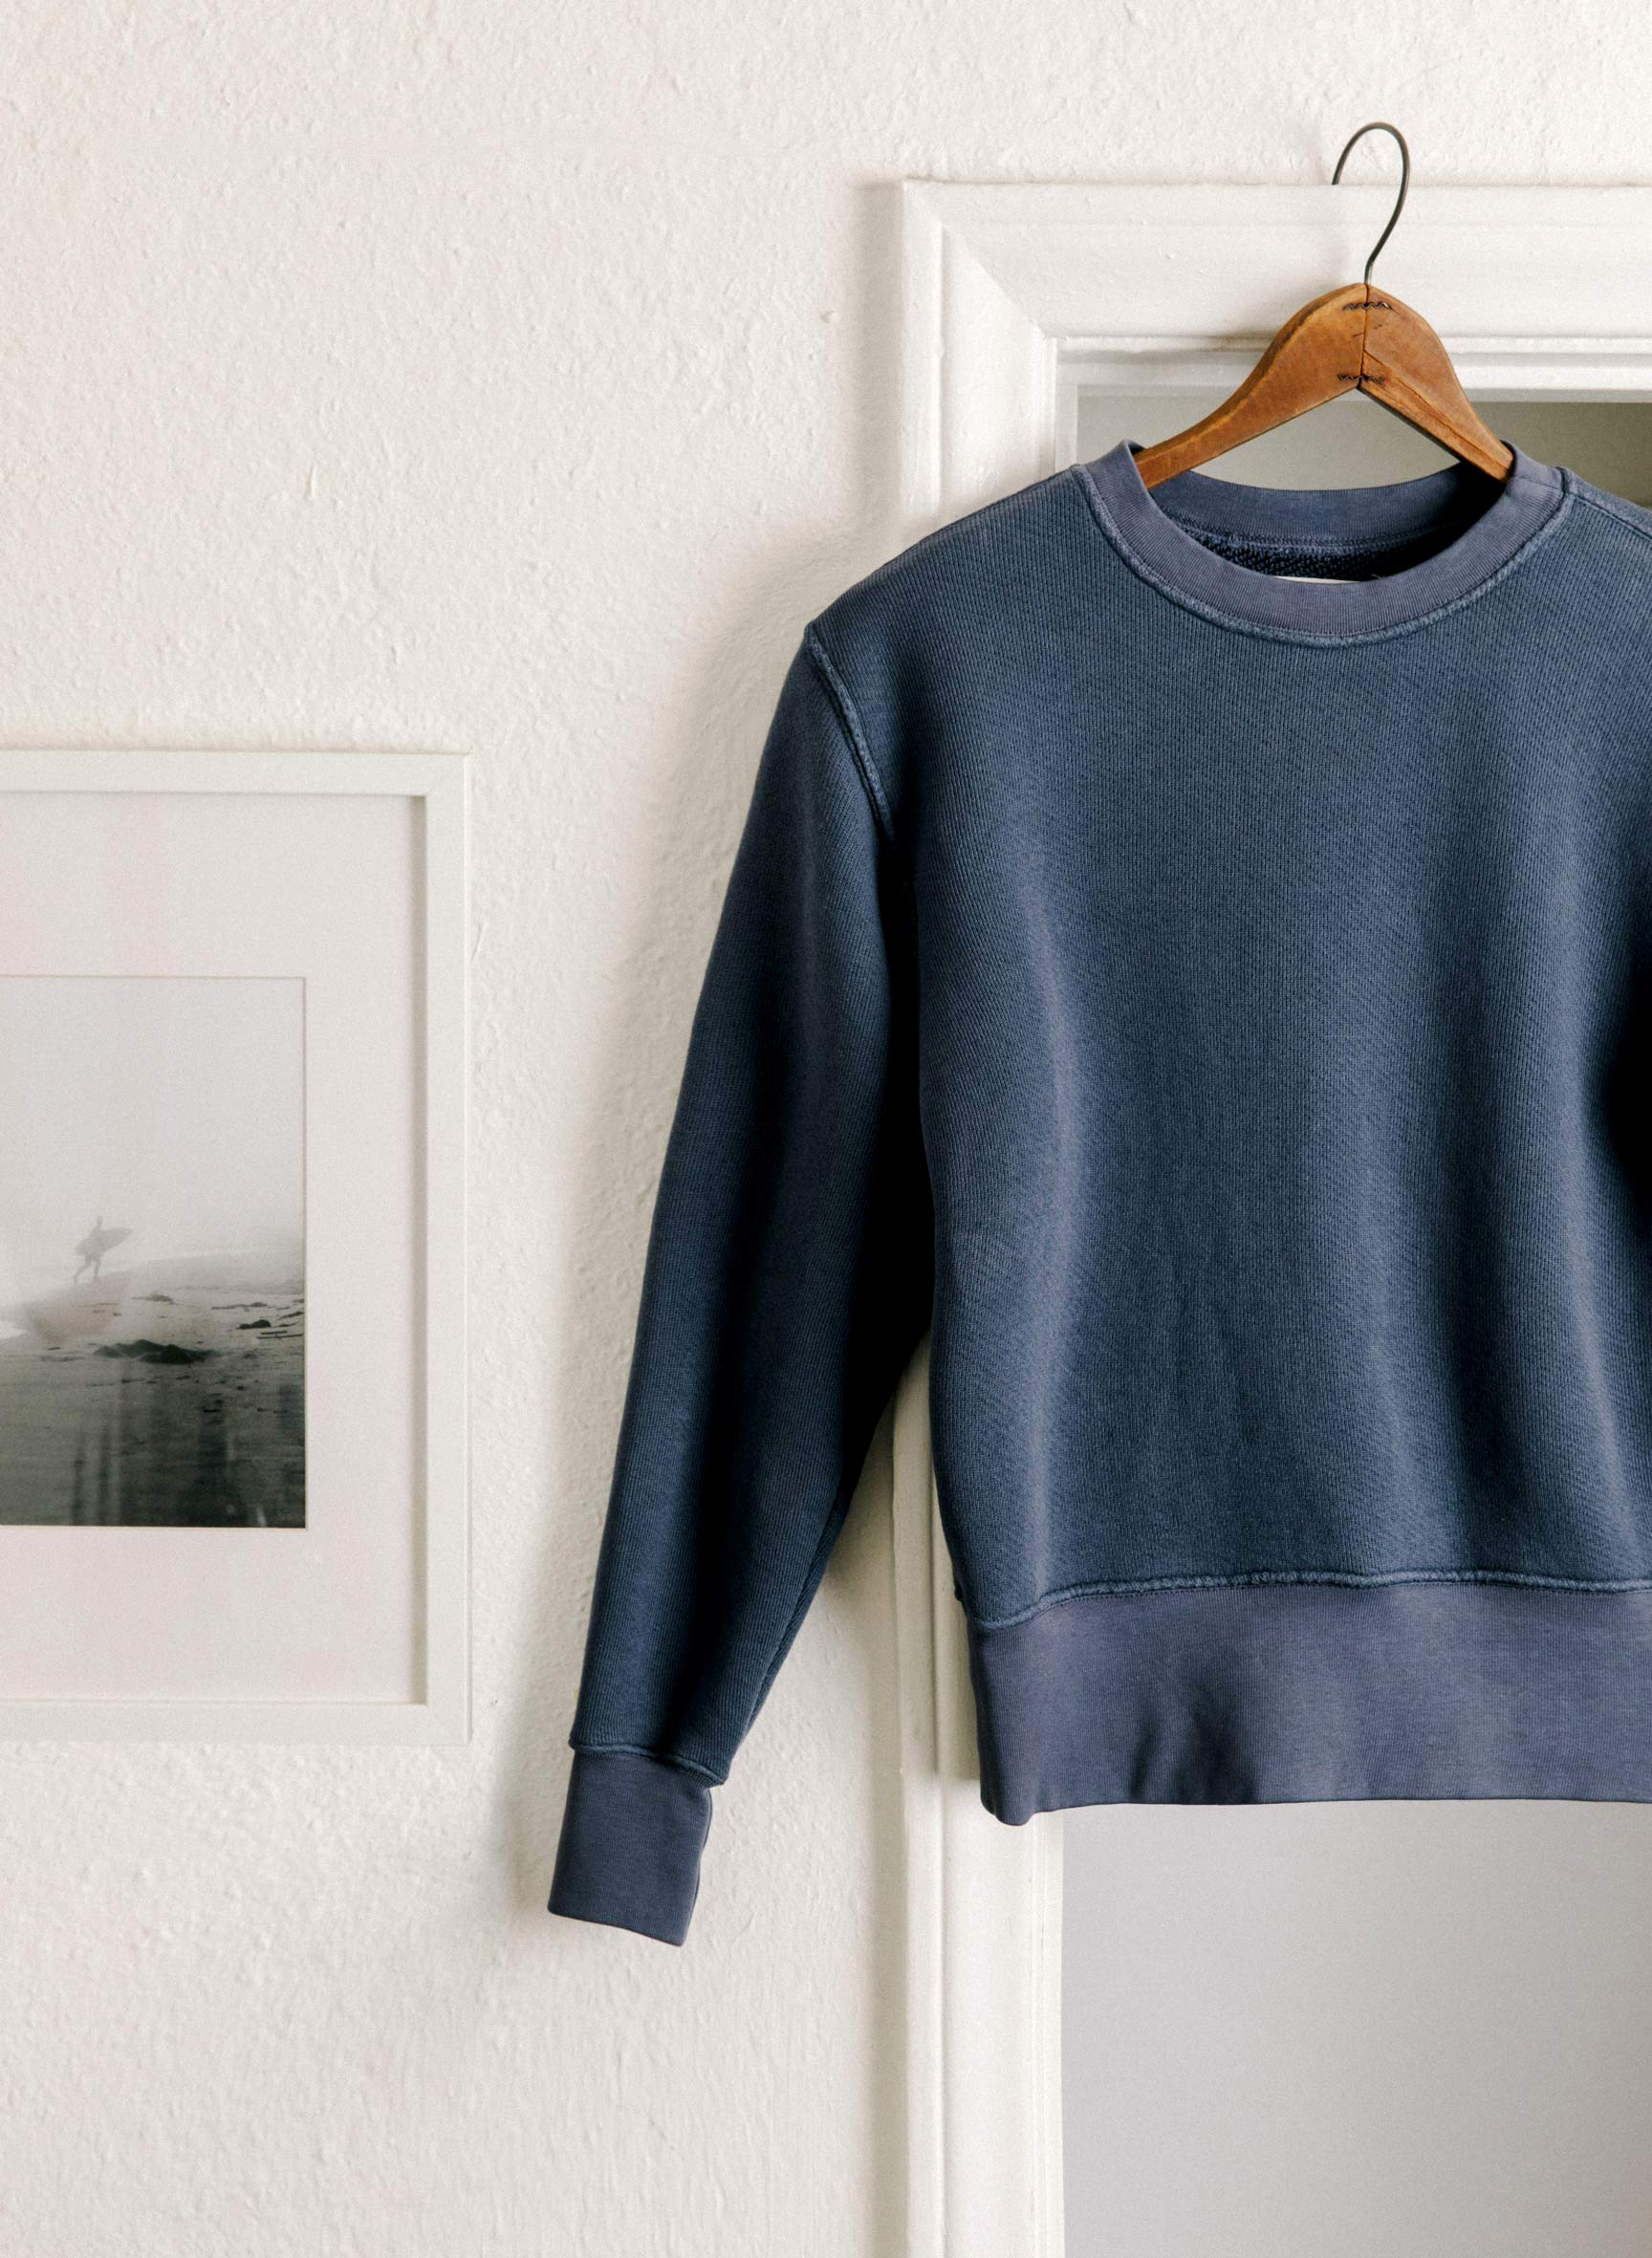 imogene + willie - lina sweatshirt in faded blue